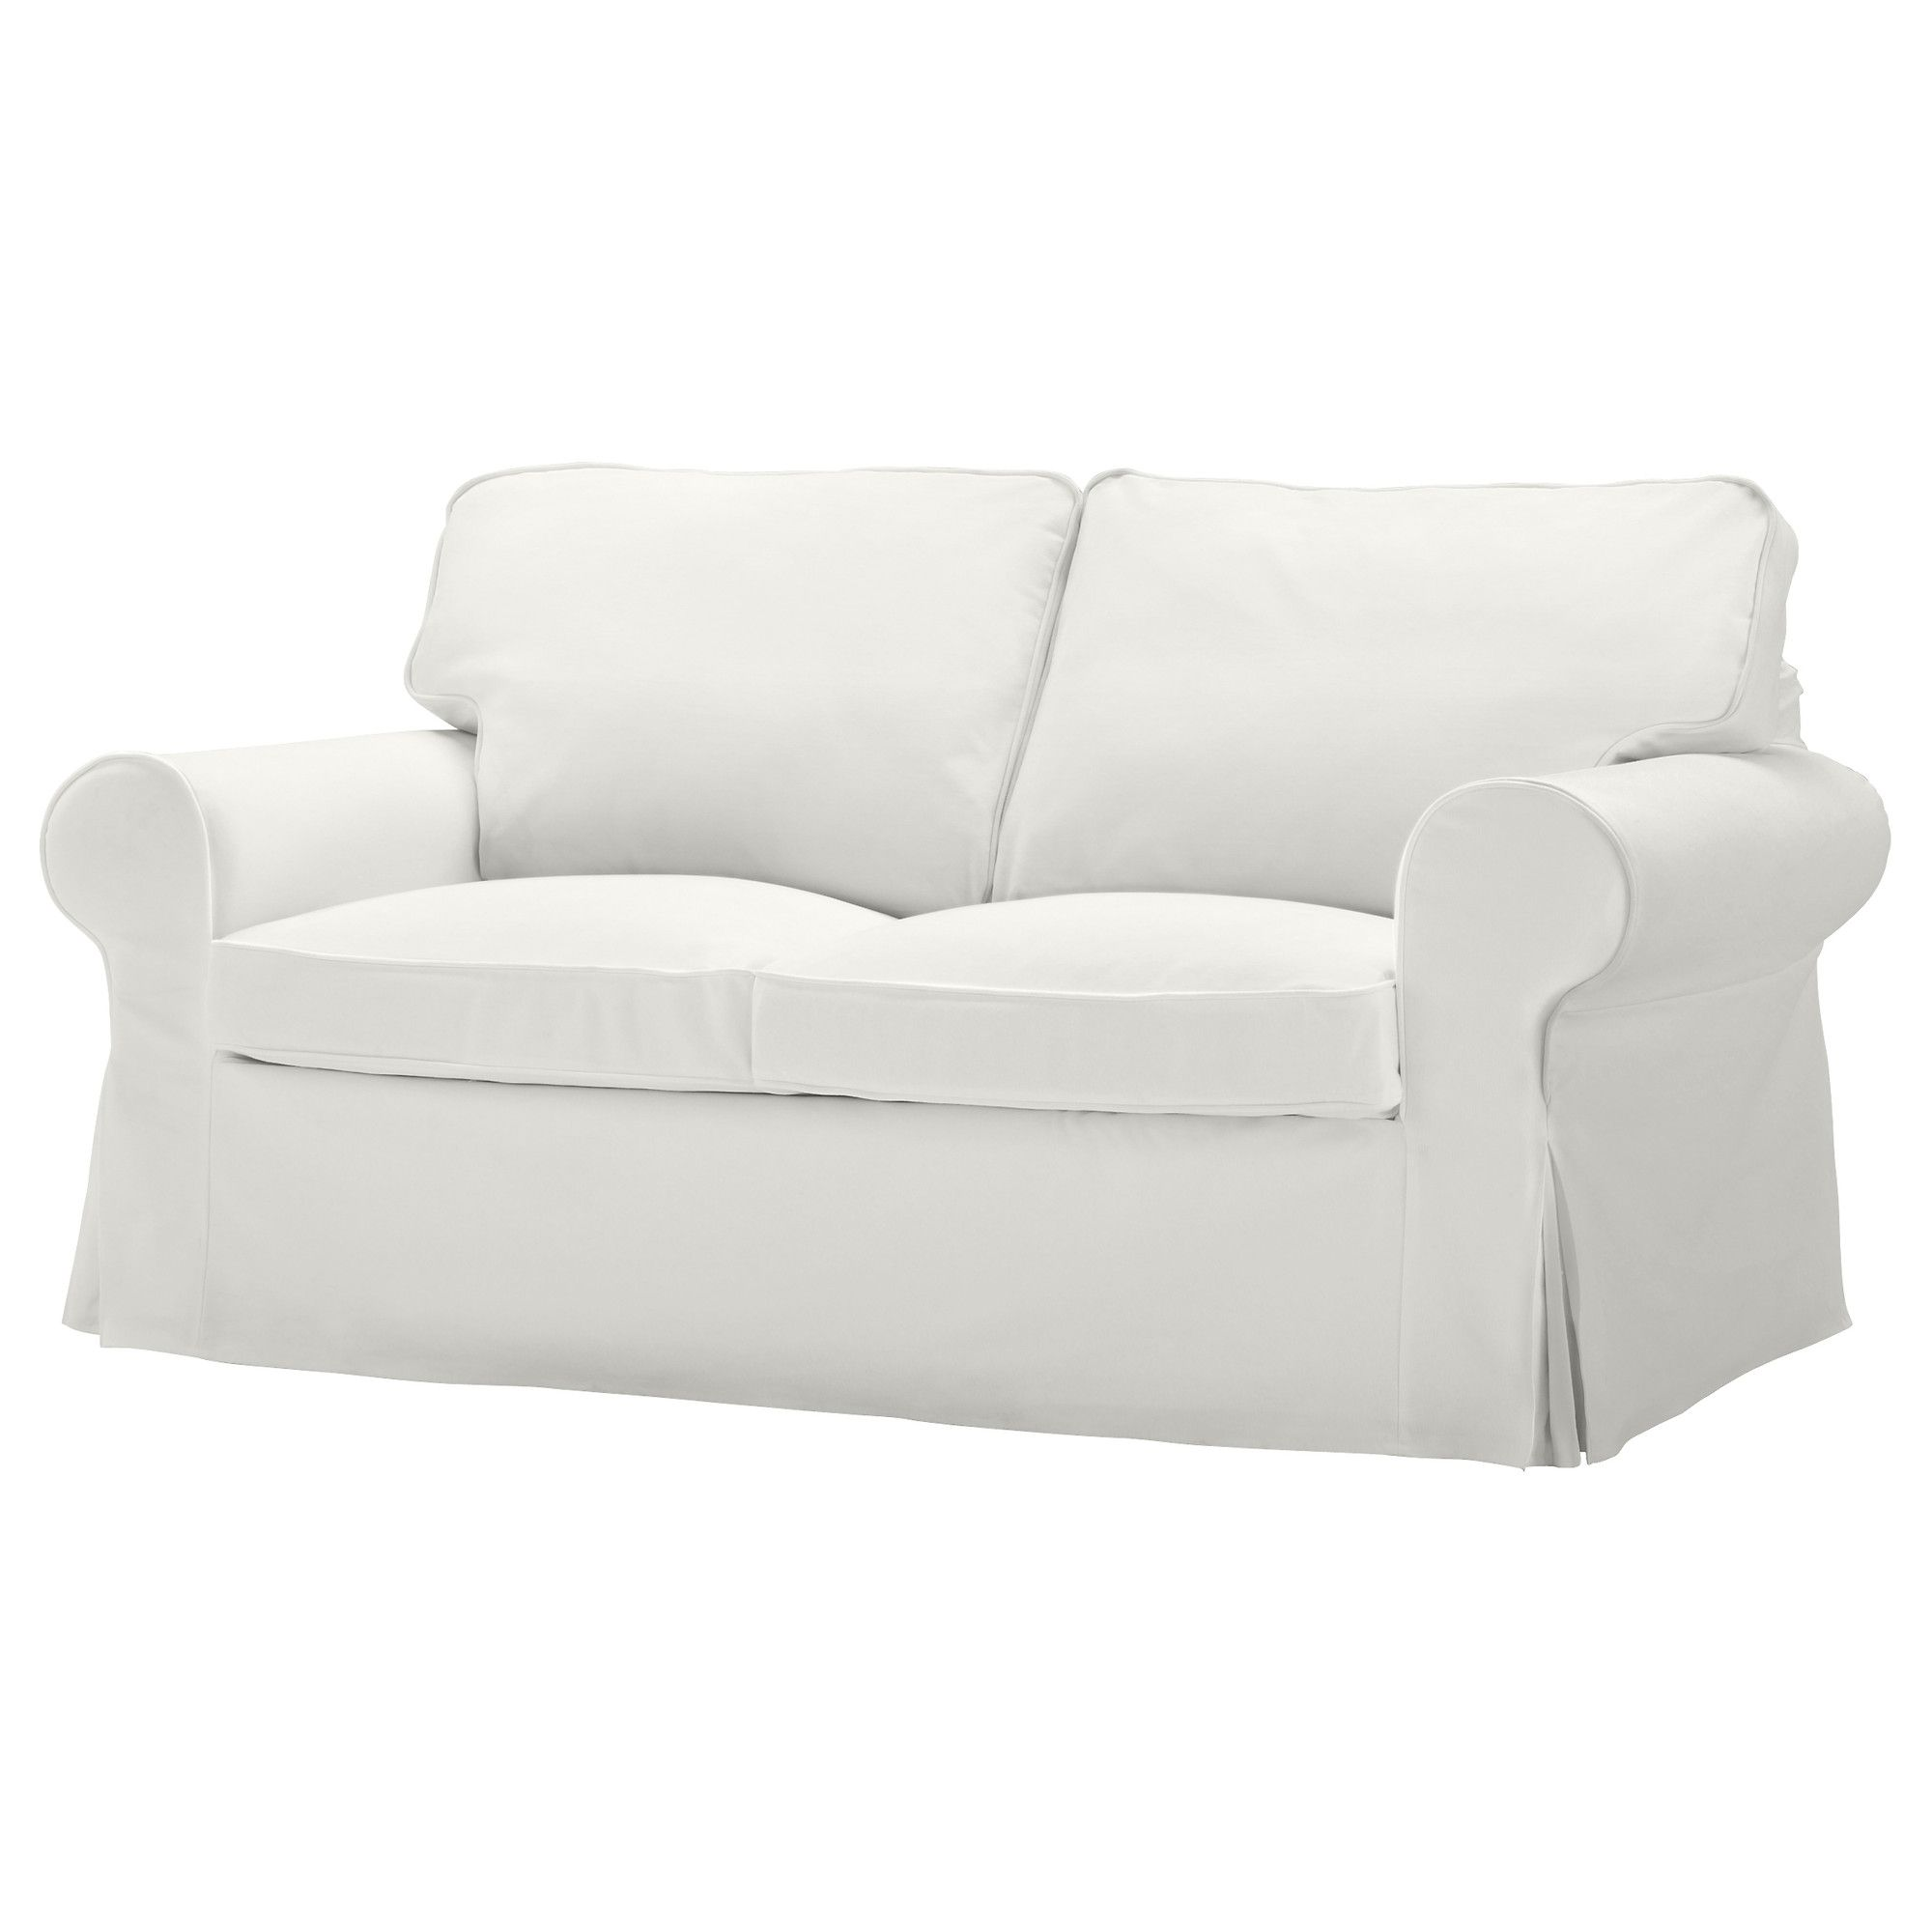 ektorp two seat sofa blekinge white my style loveseat. Black Bedroom Furniture Sets. Home Design Ideas